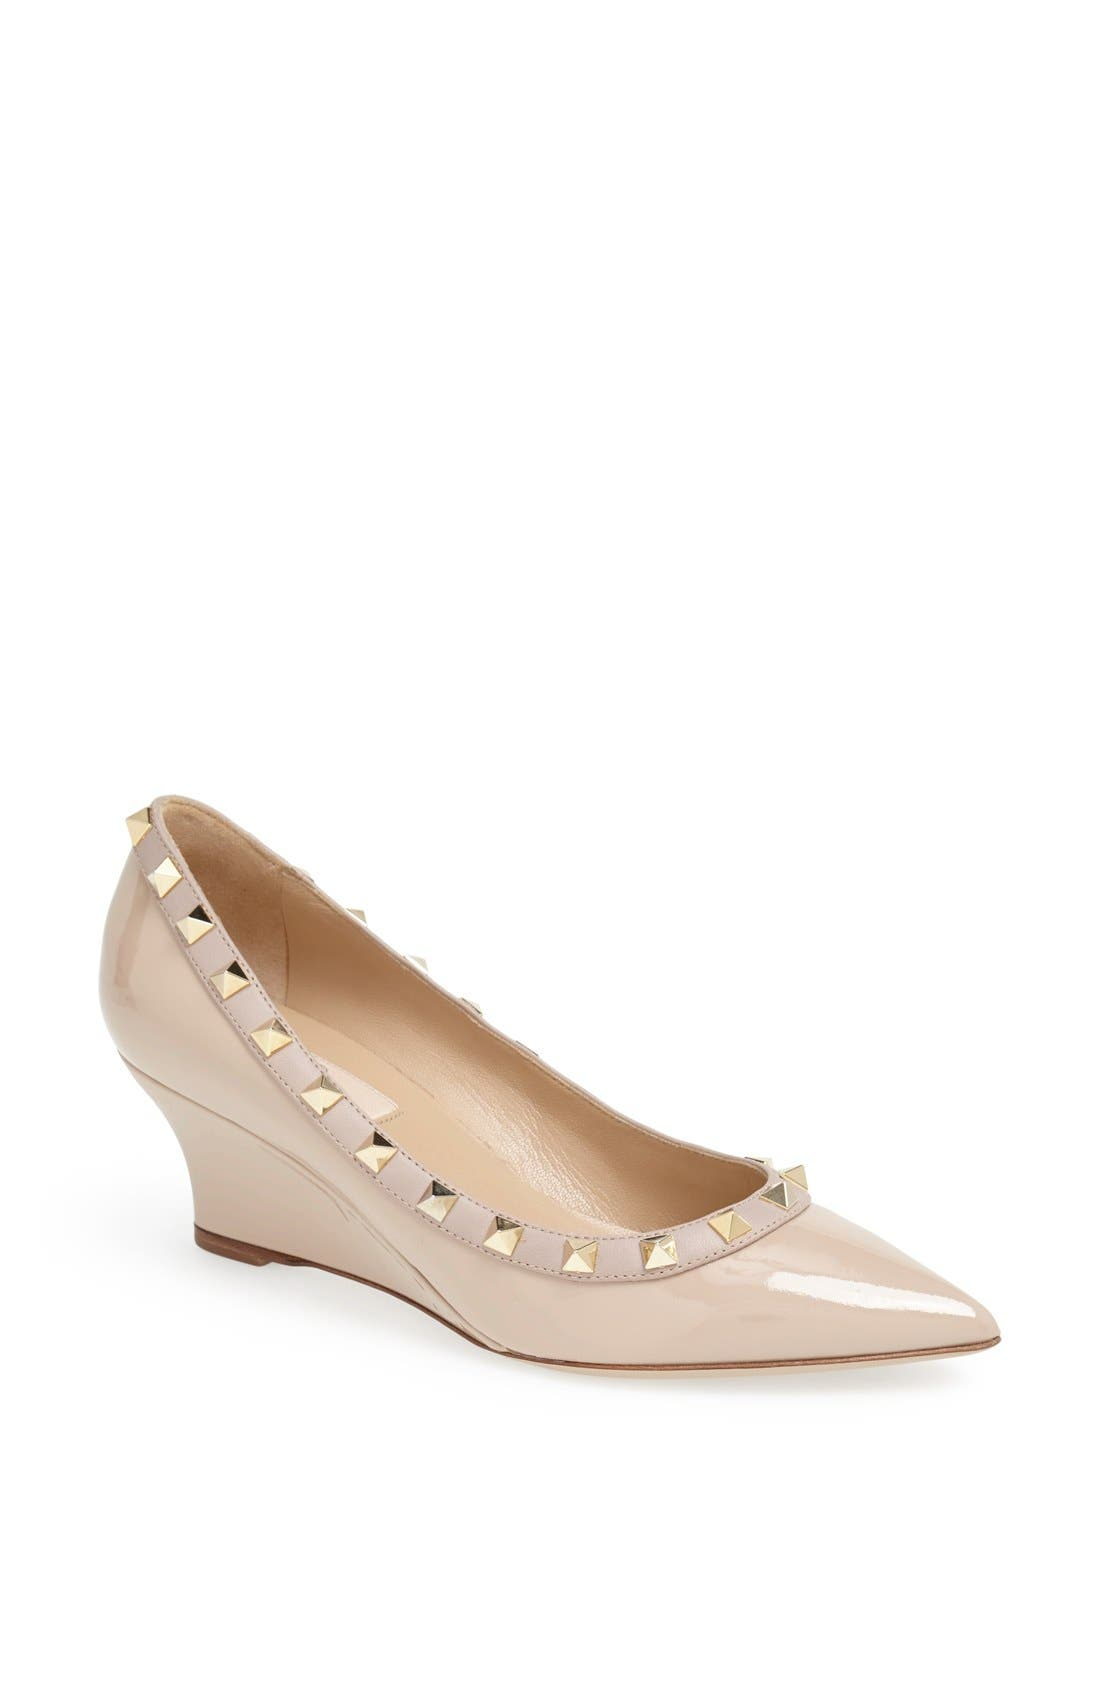 Alternate Image 1 Selected - Valentino 'Rockstud' Wedge